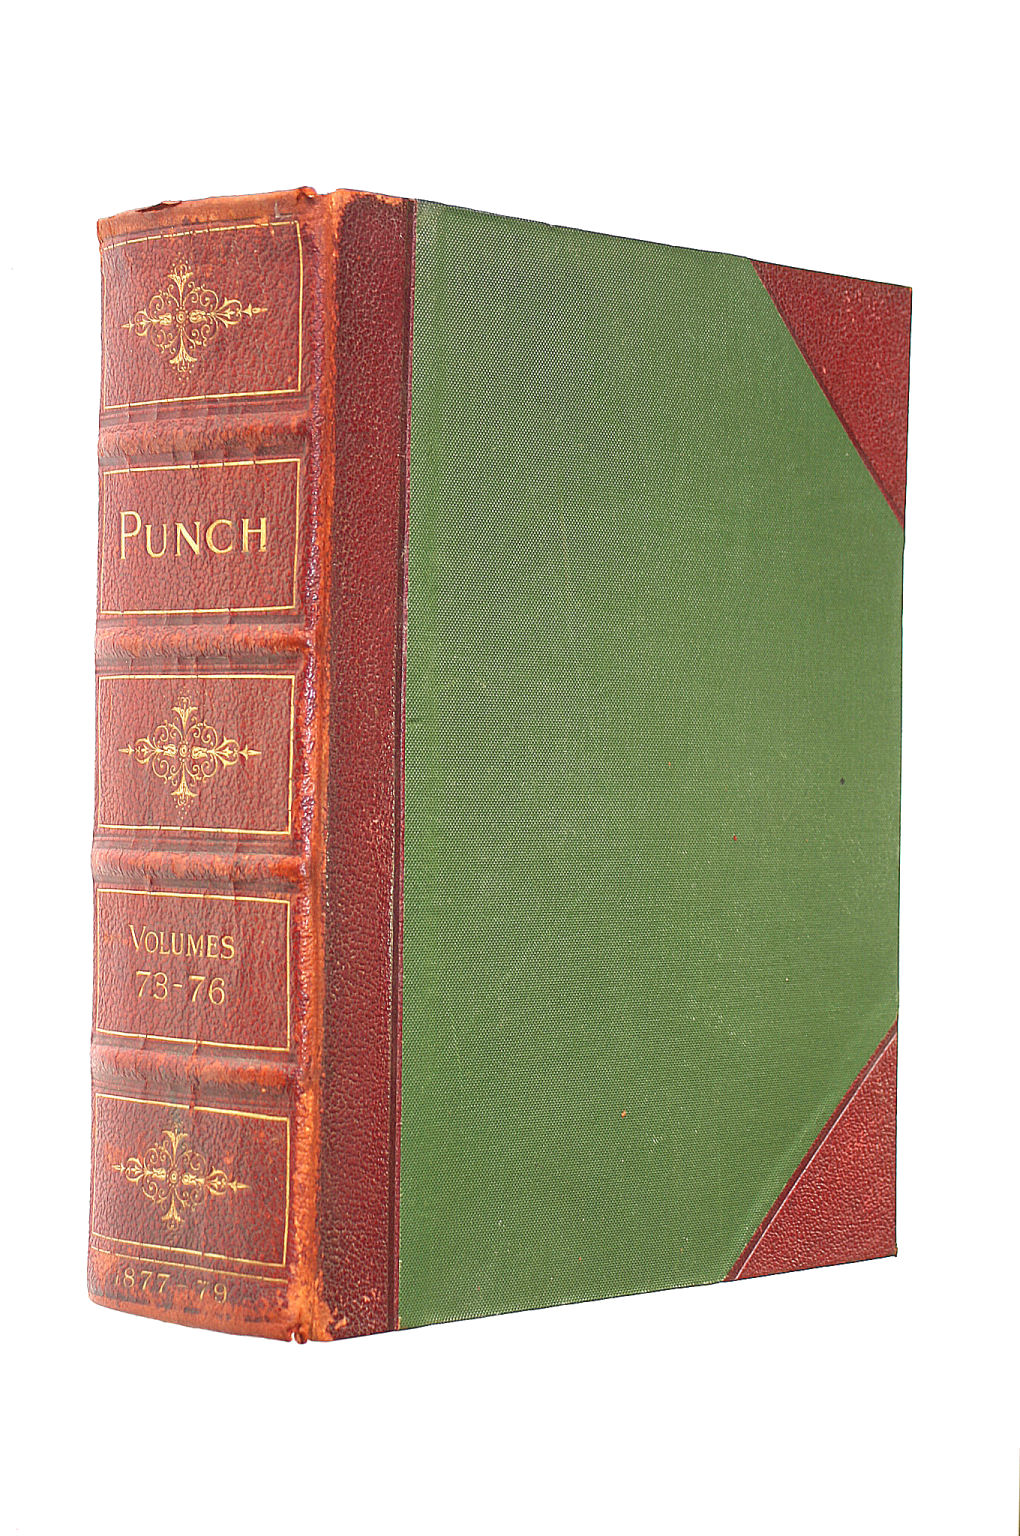 Image for Punch Volumes 73-76 (1877-79 By Various